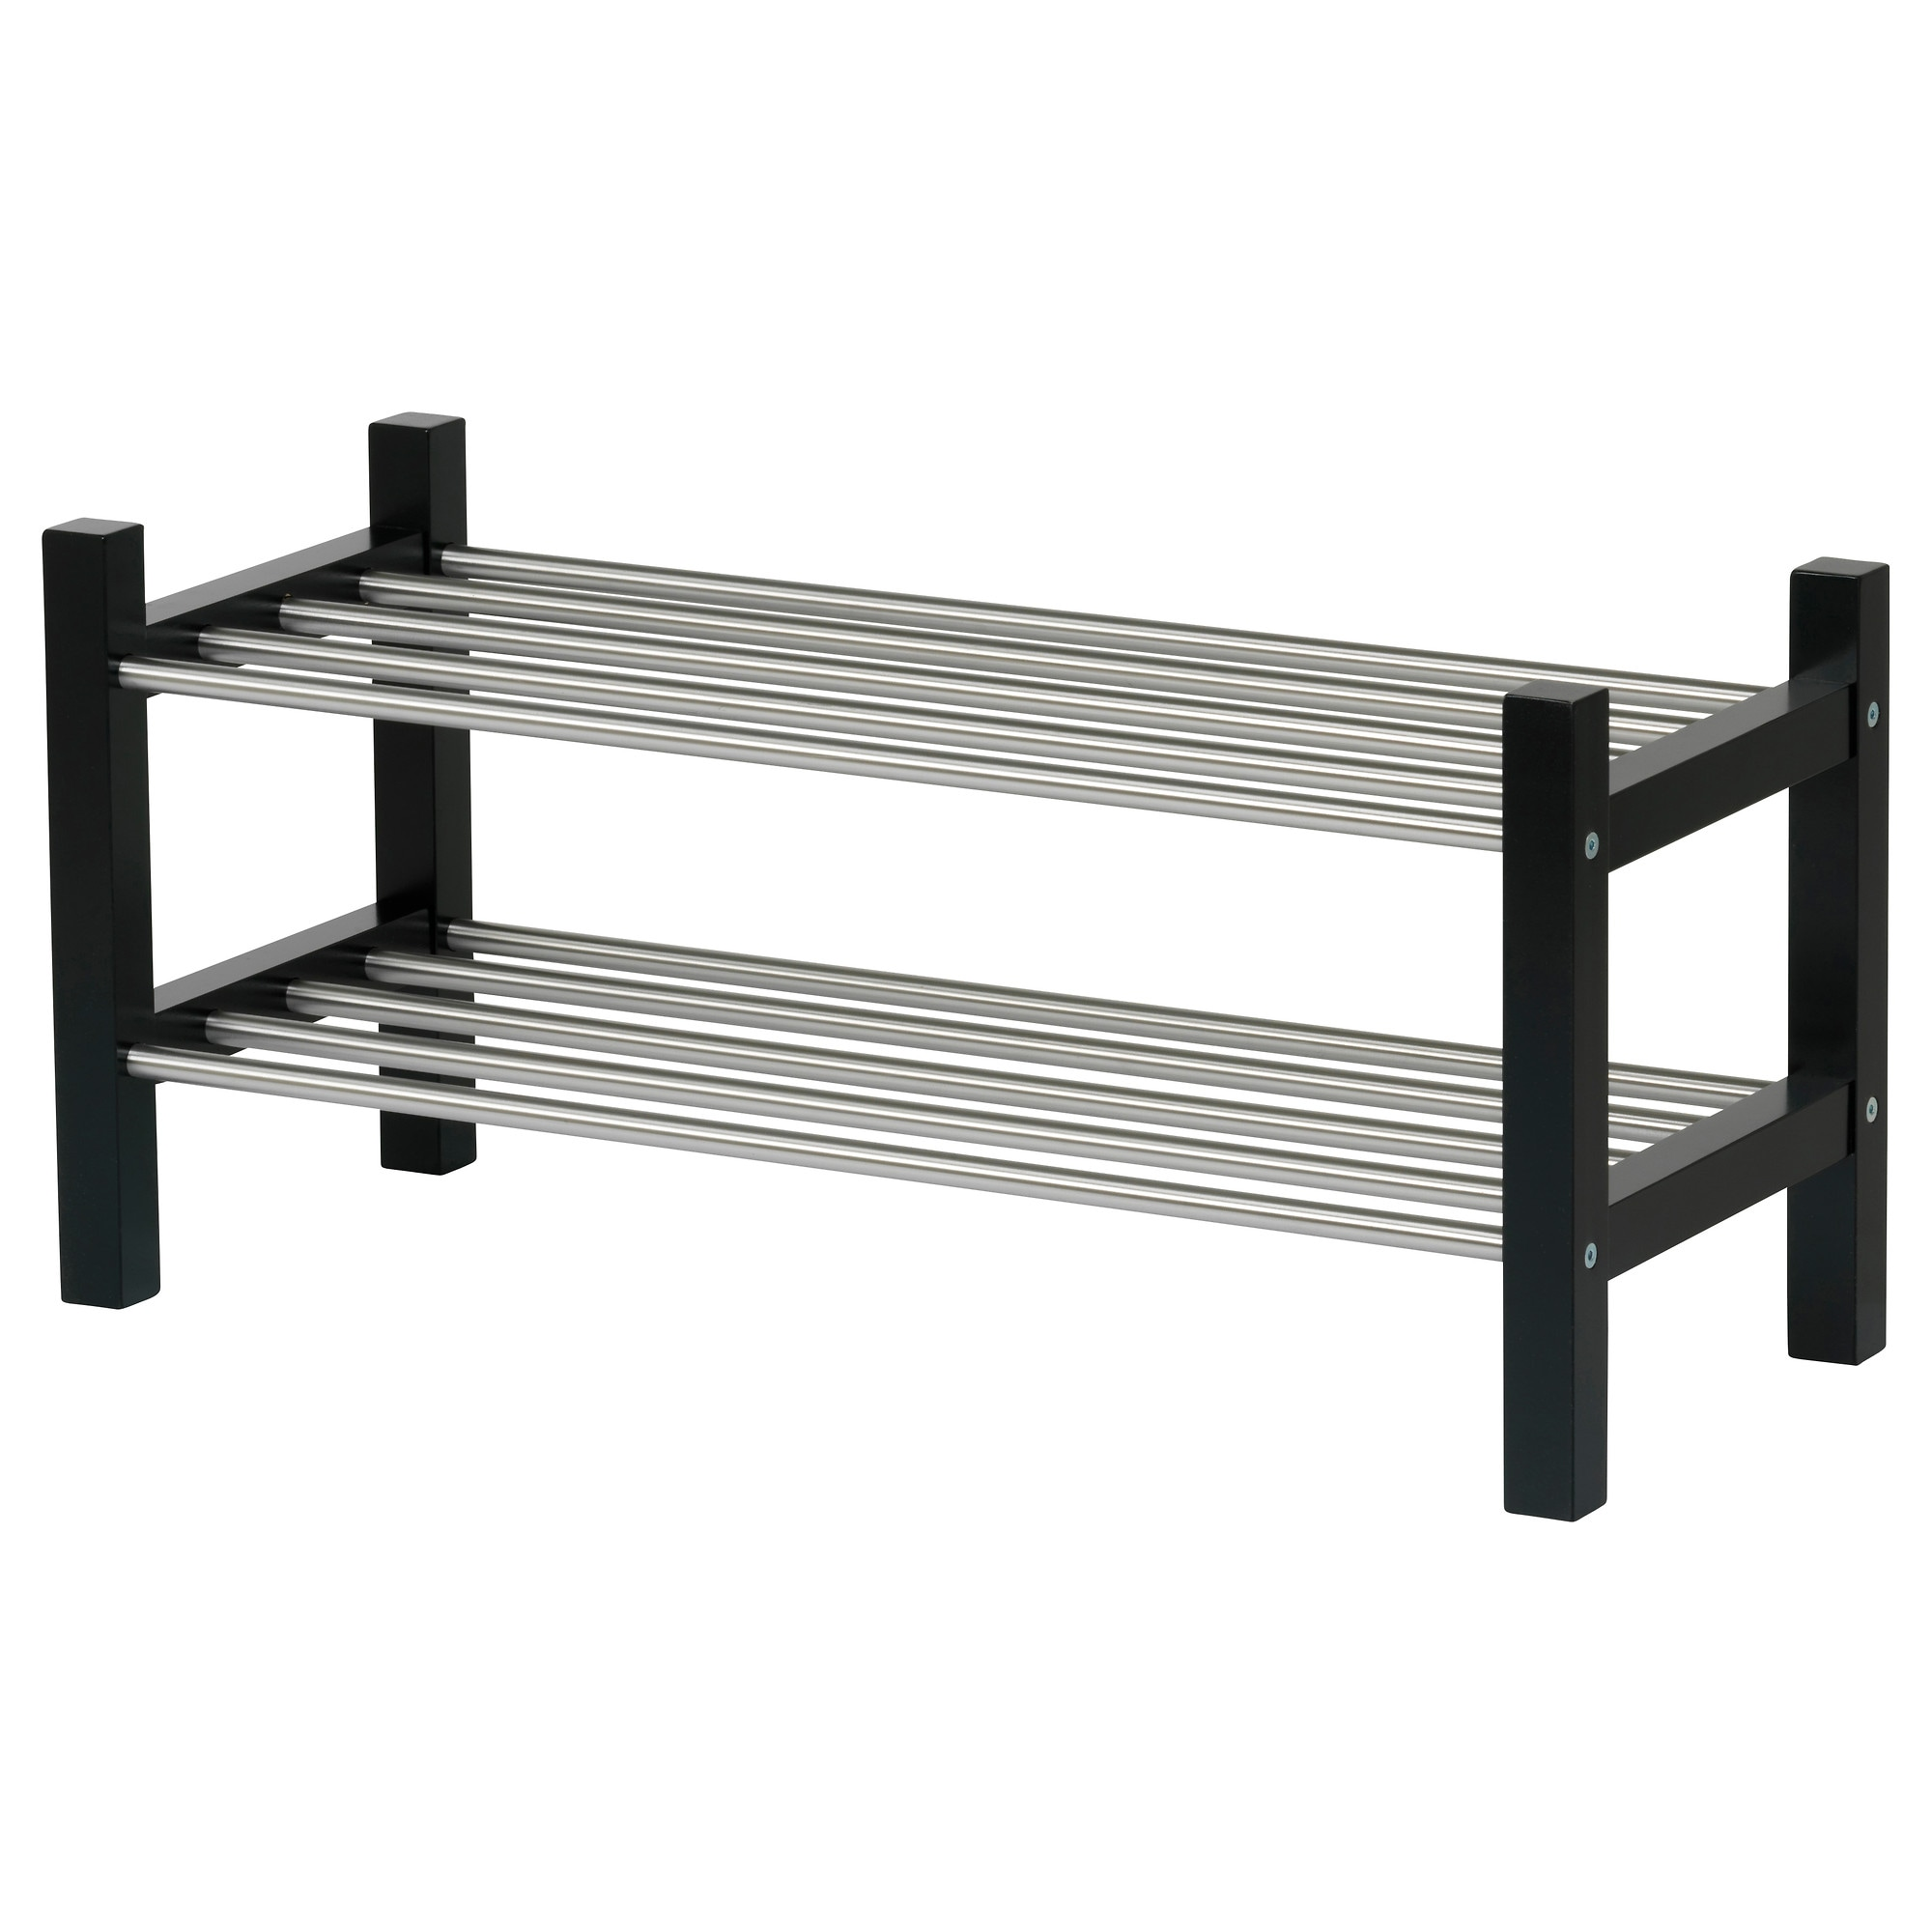 Design Ikea Shoe Storage tjusig shoe rack black ikea